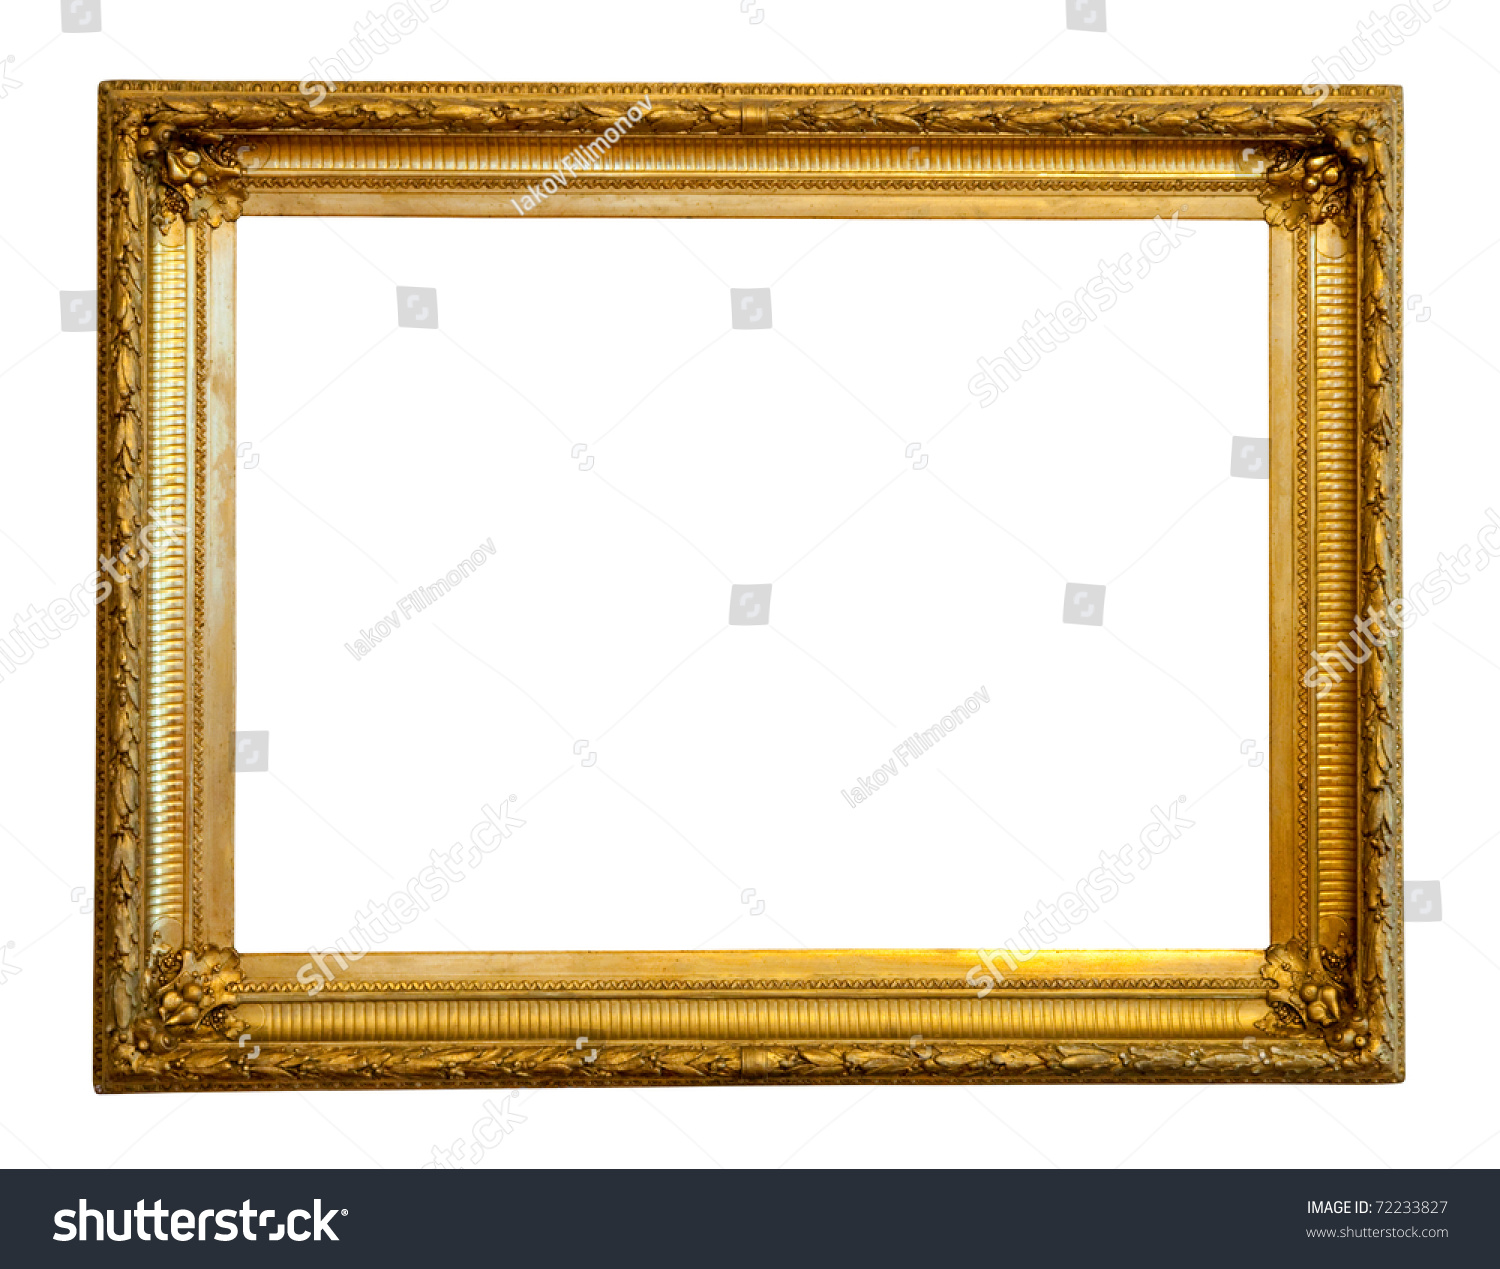 old gilded frame isolated over white background with clipping path